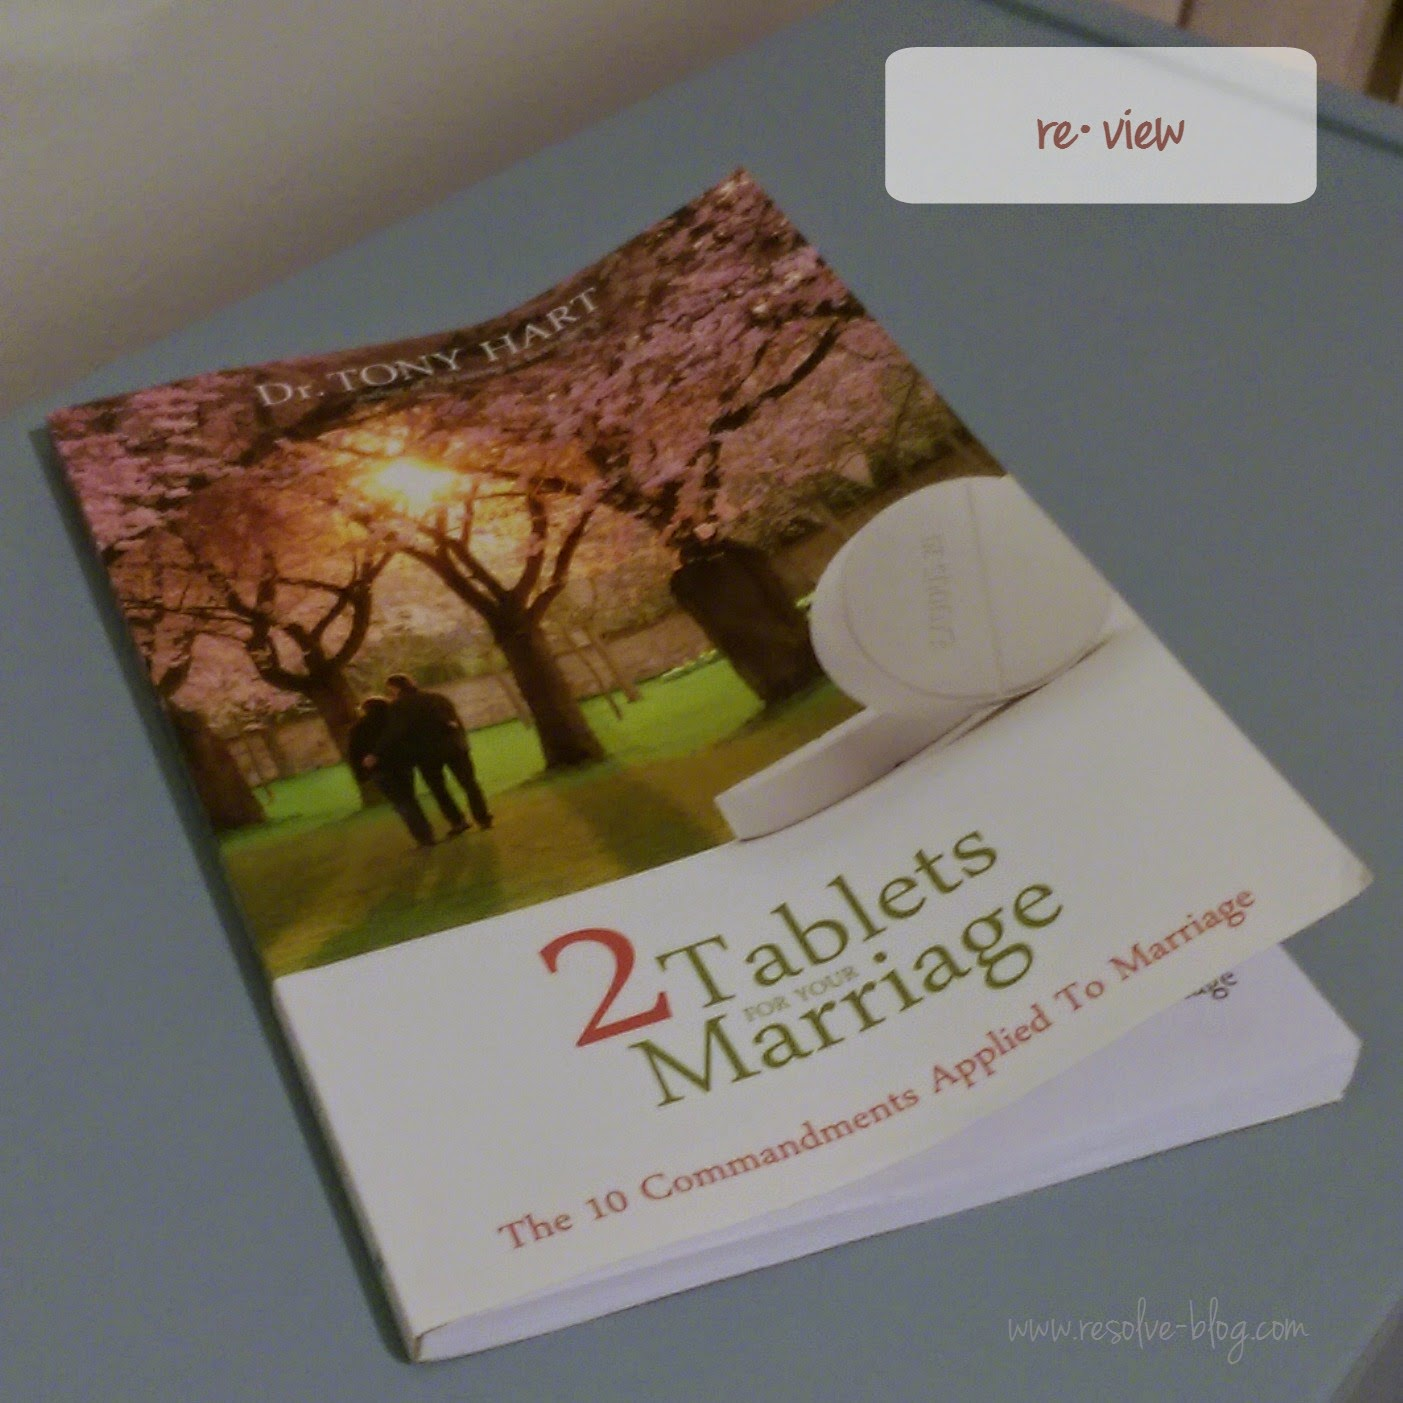 Two Tablets for Your Marriage by Dr. Tony Hart